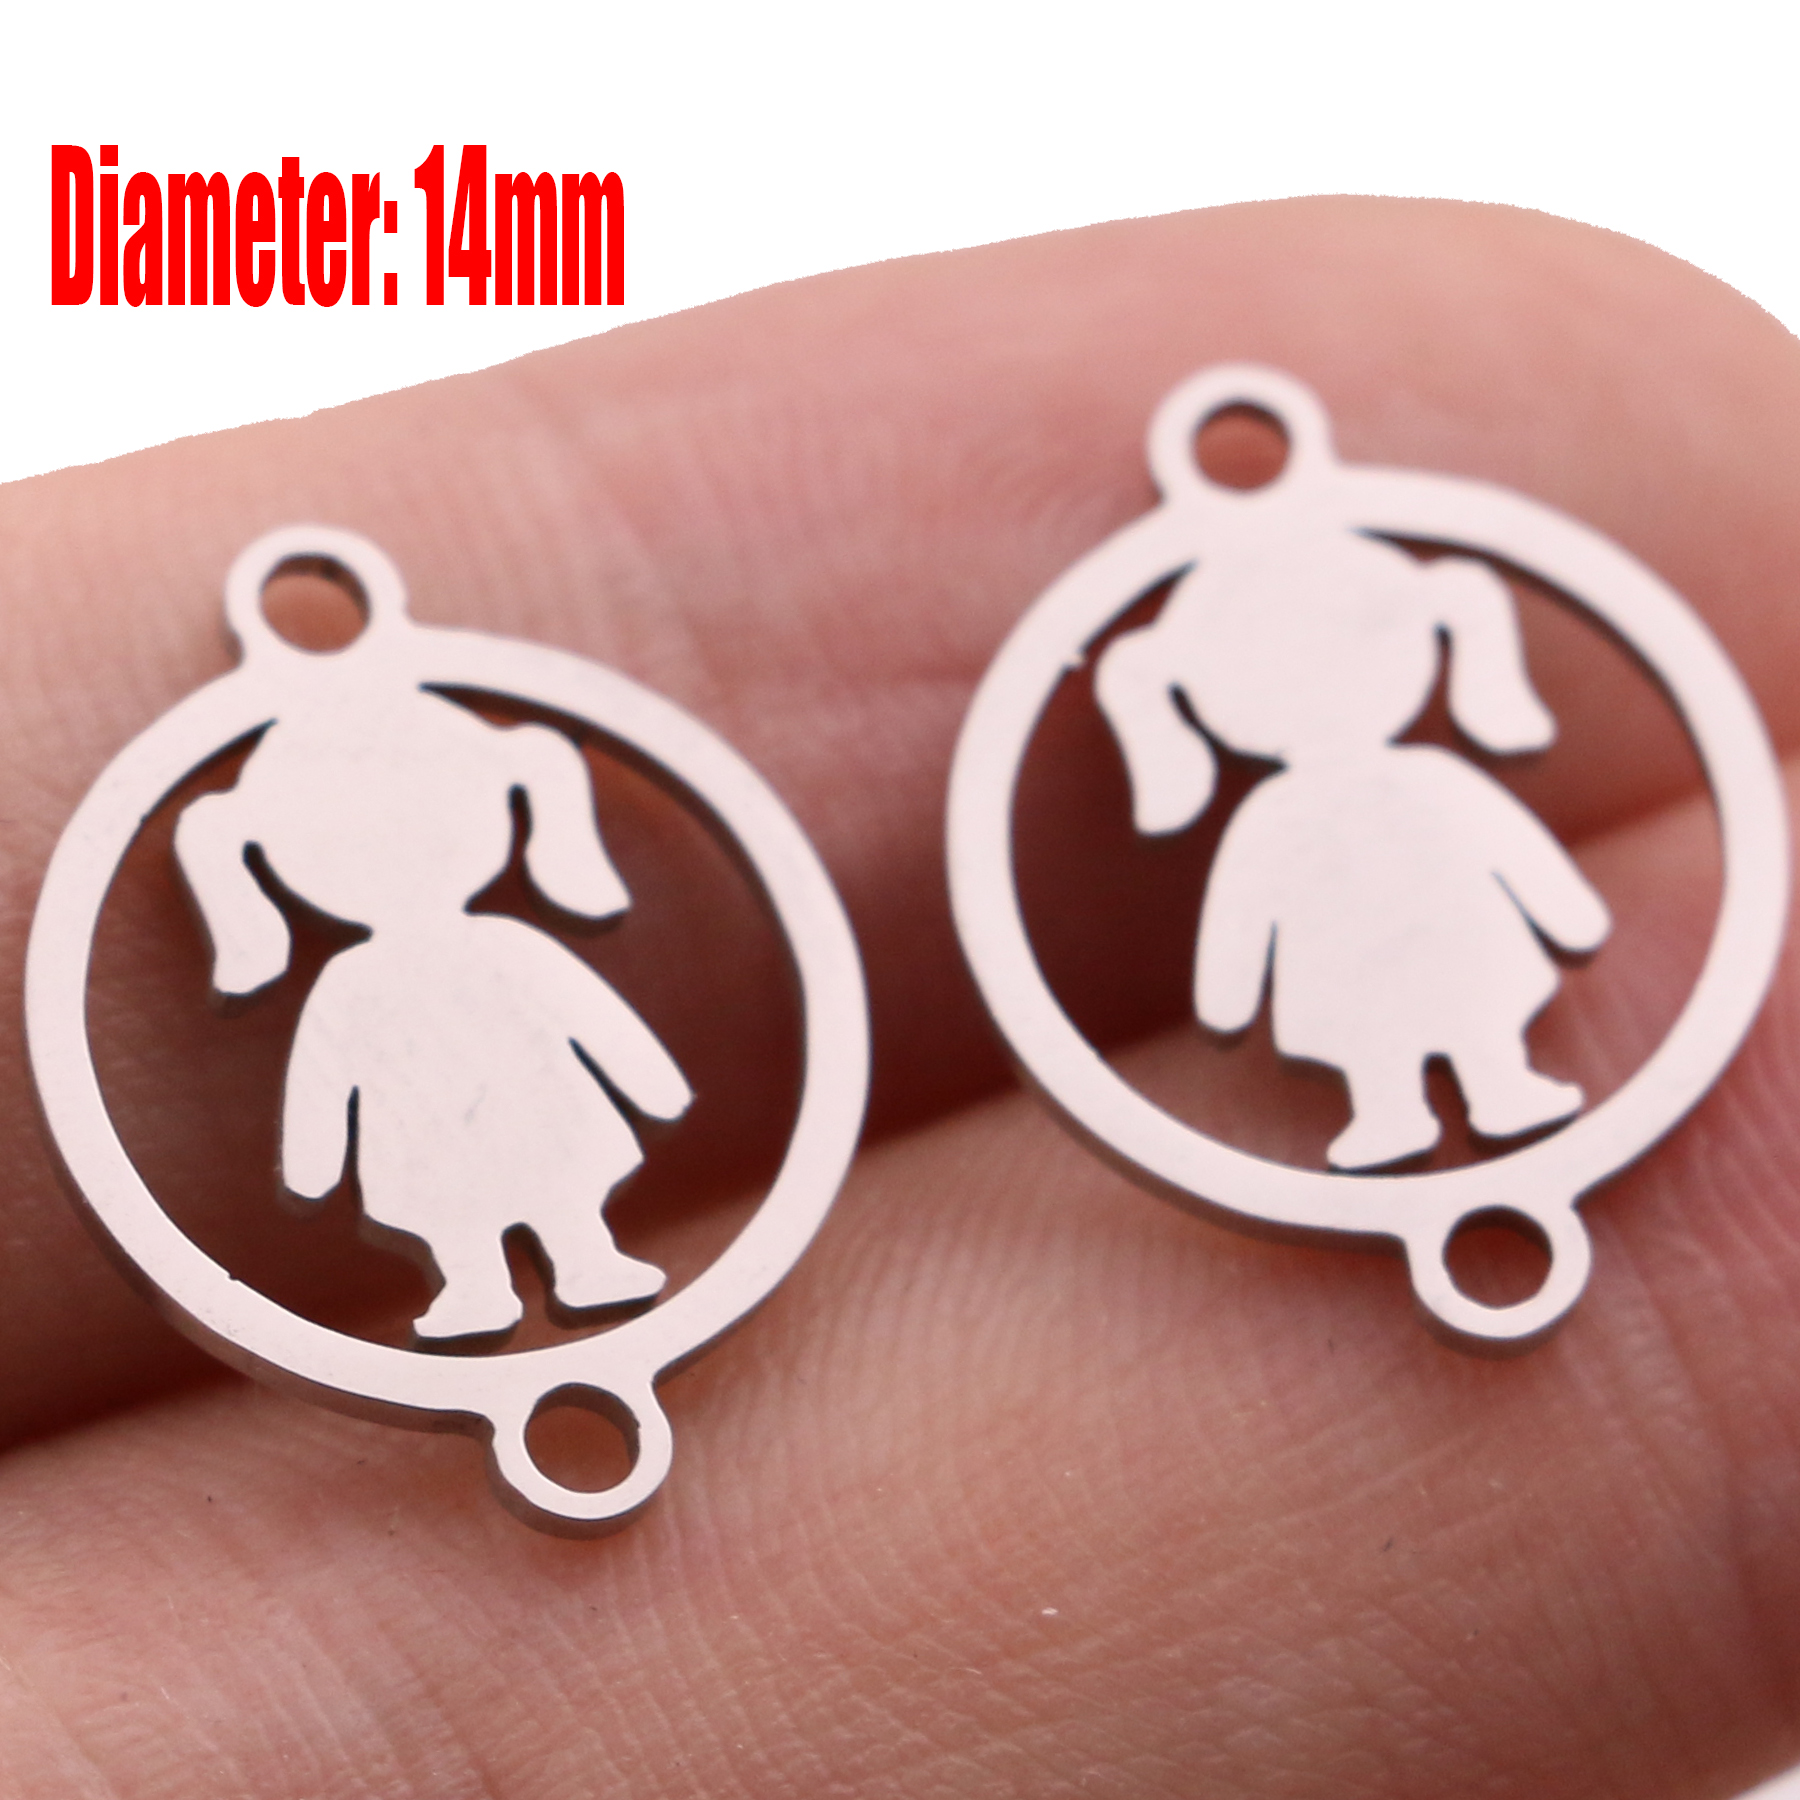 5pcs Family Chain Stainless Steel Pendant Necklace Parents and Children Necklaces Gold/steel Jewelry Gift for Mom Dad New Twice - Цвет: Steel 14